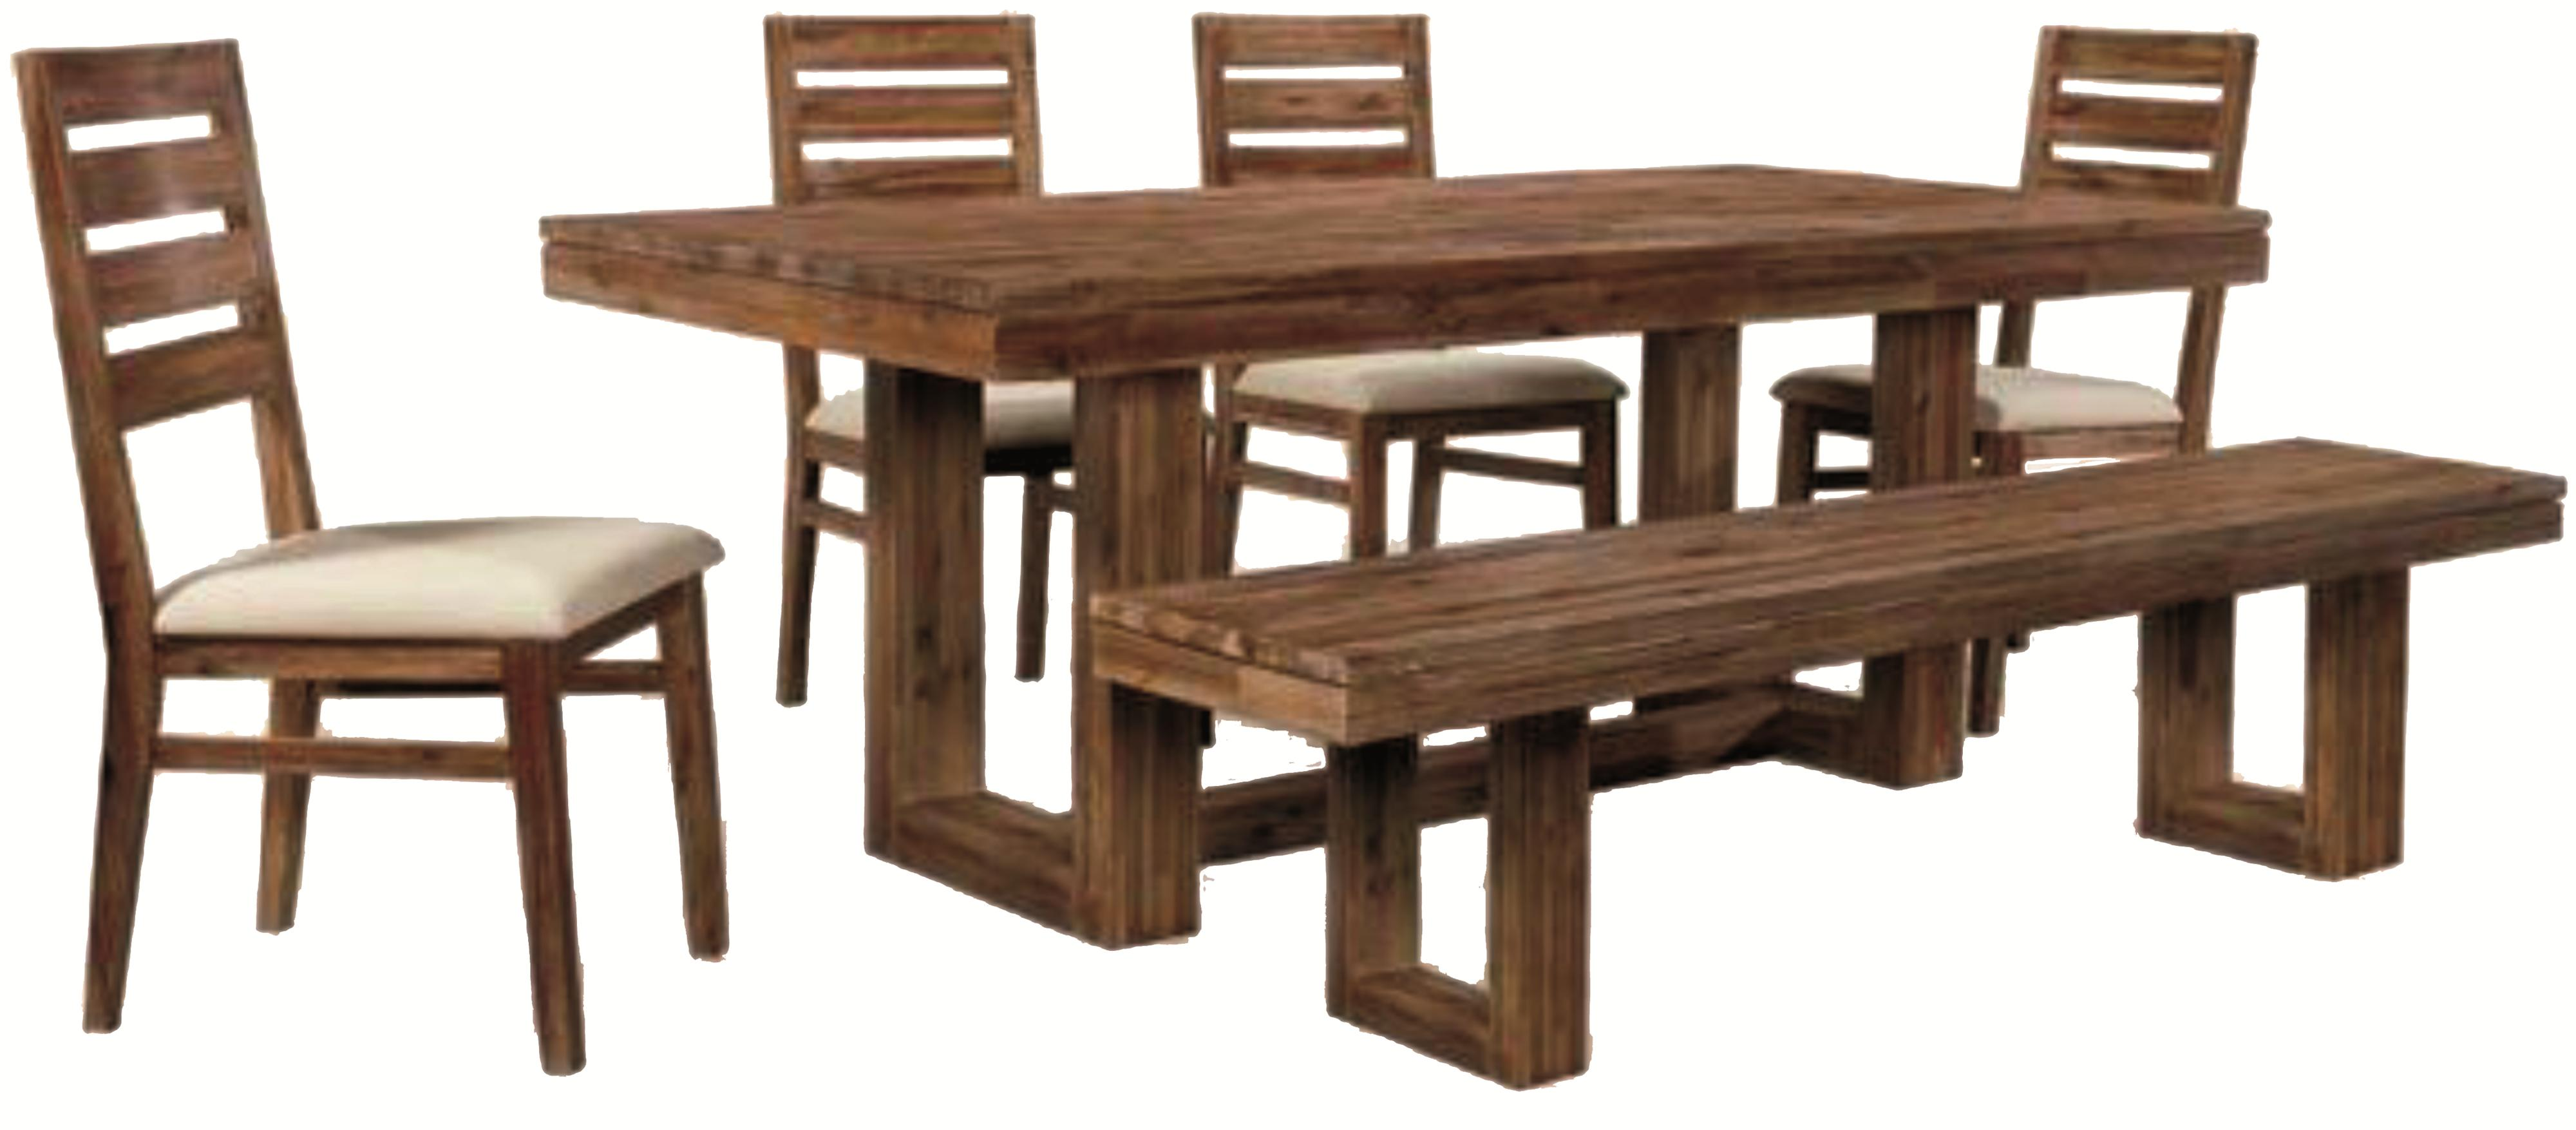 rustic kitchen chairs Six Piece Modern Rustic Rectangular Trestle Table with Ladderback Side Chairs Dining Bench